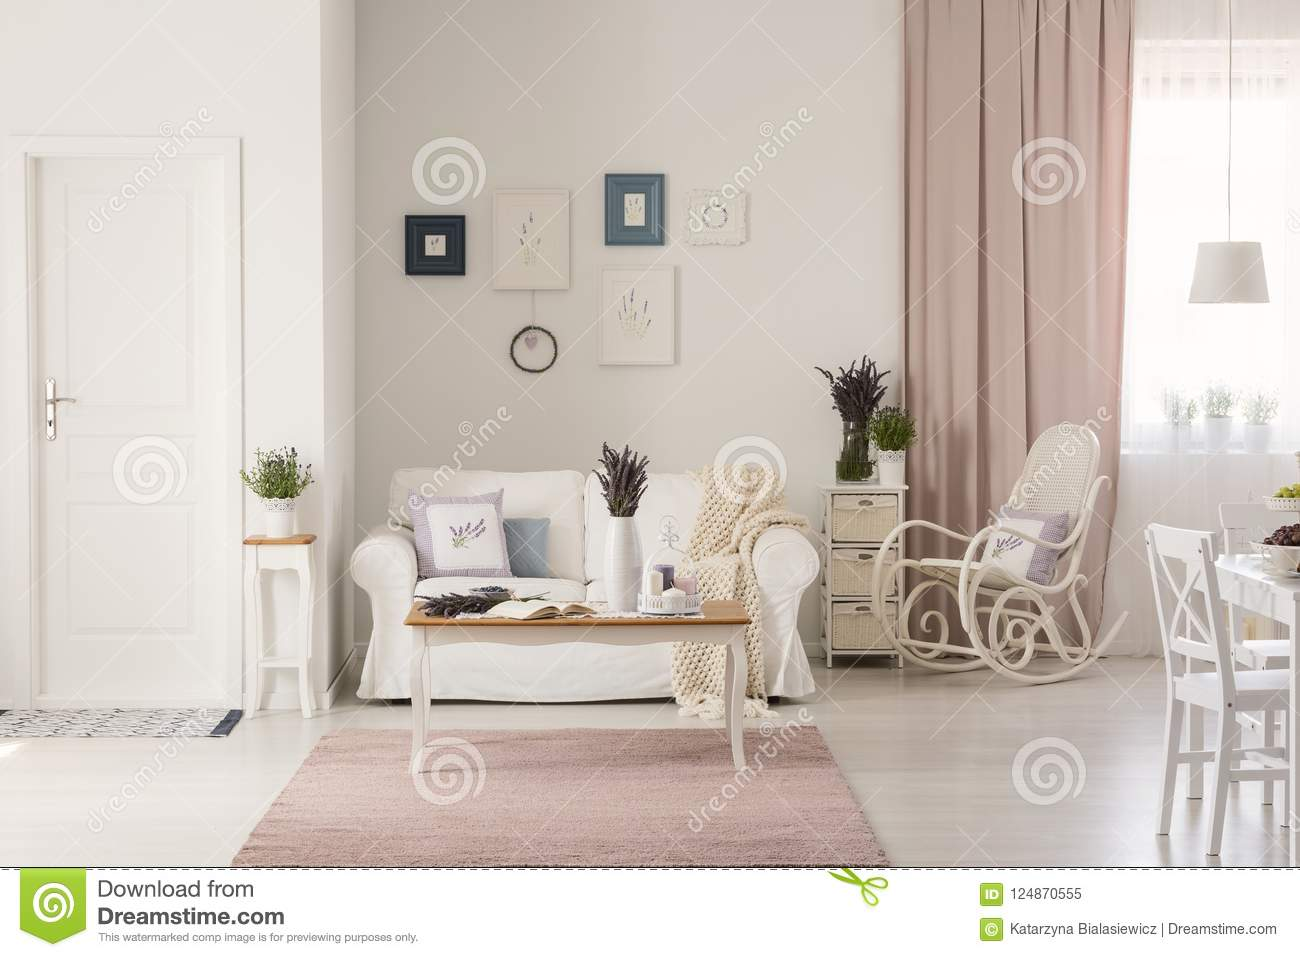 Wooden Table On Pink Rug In White Living Room Interior With